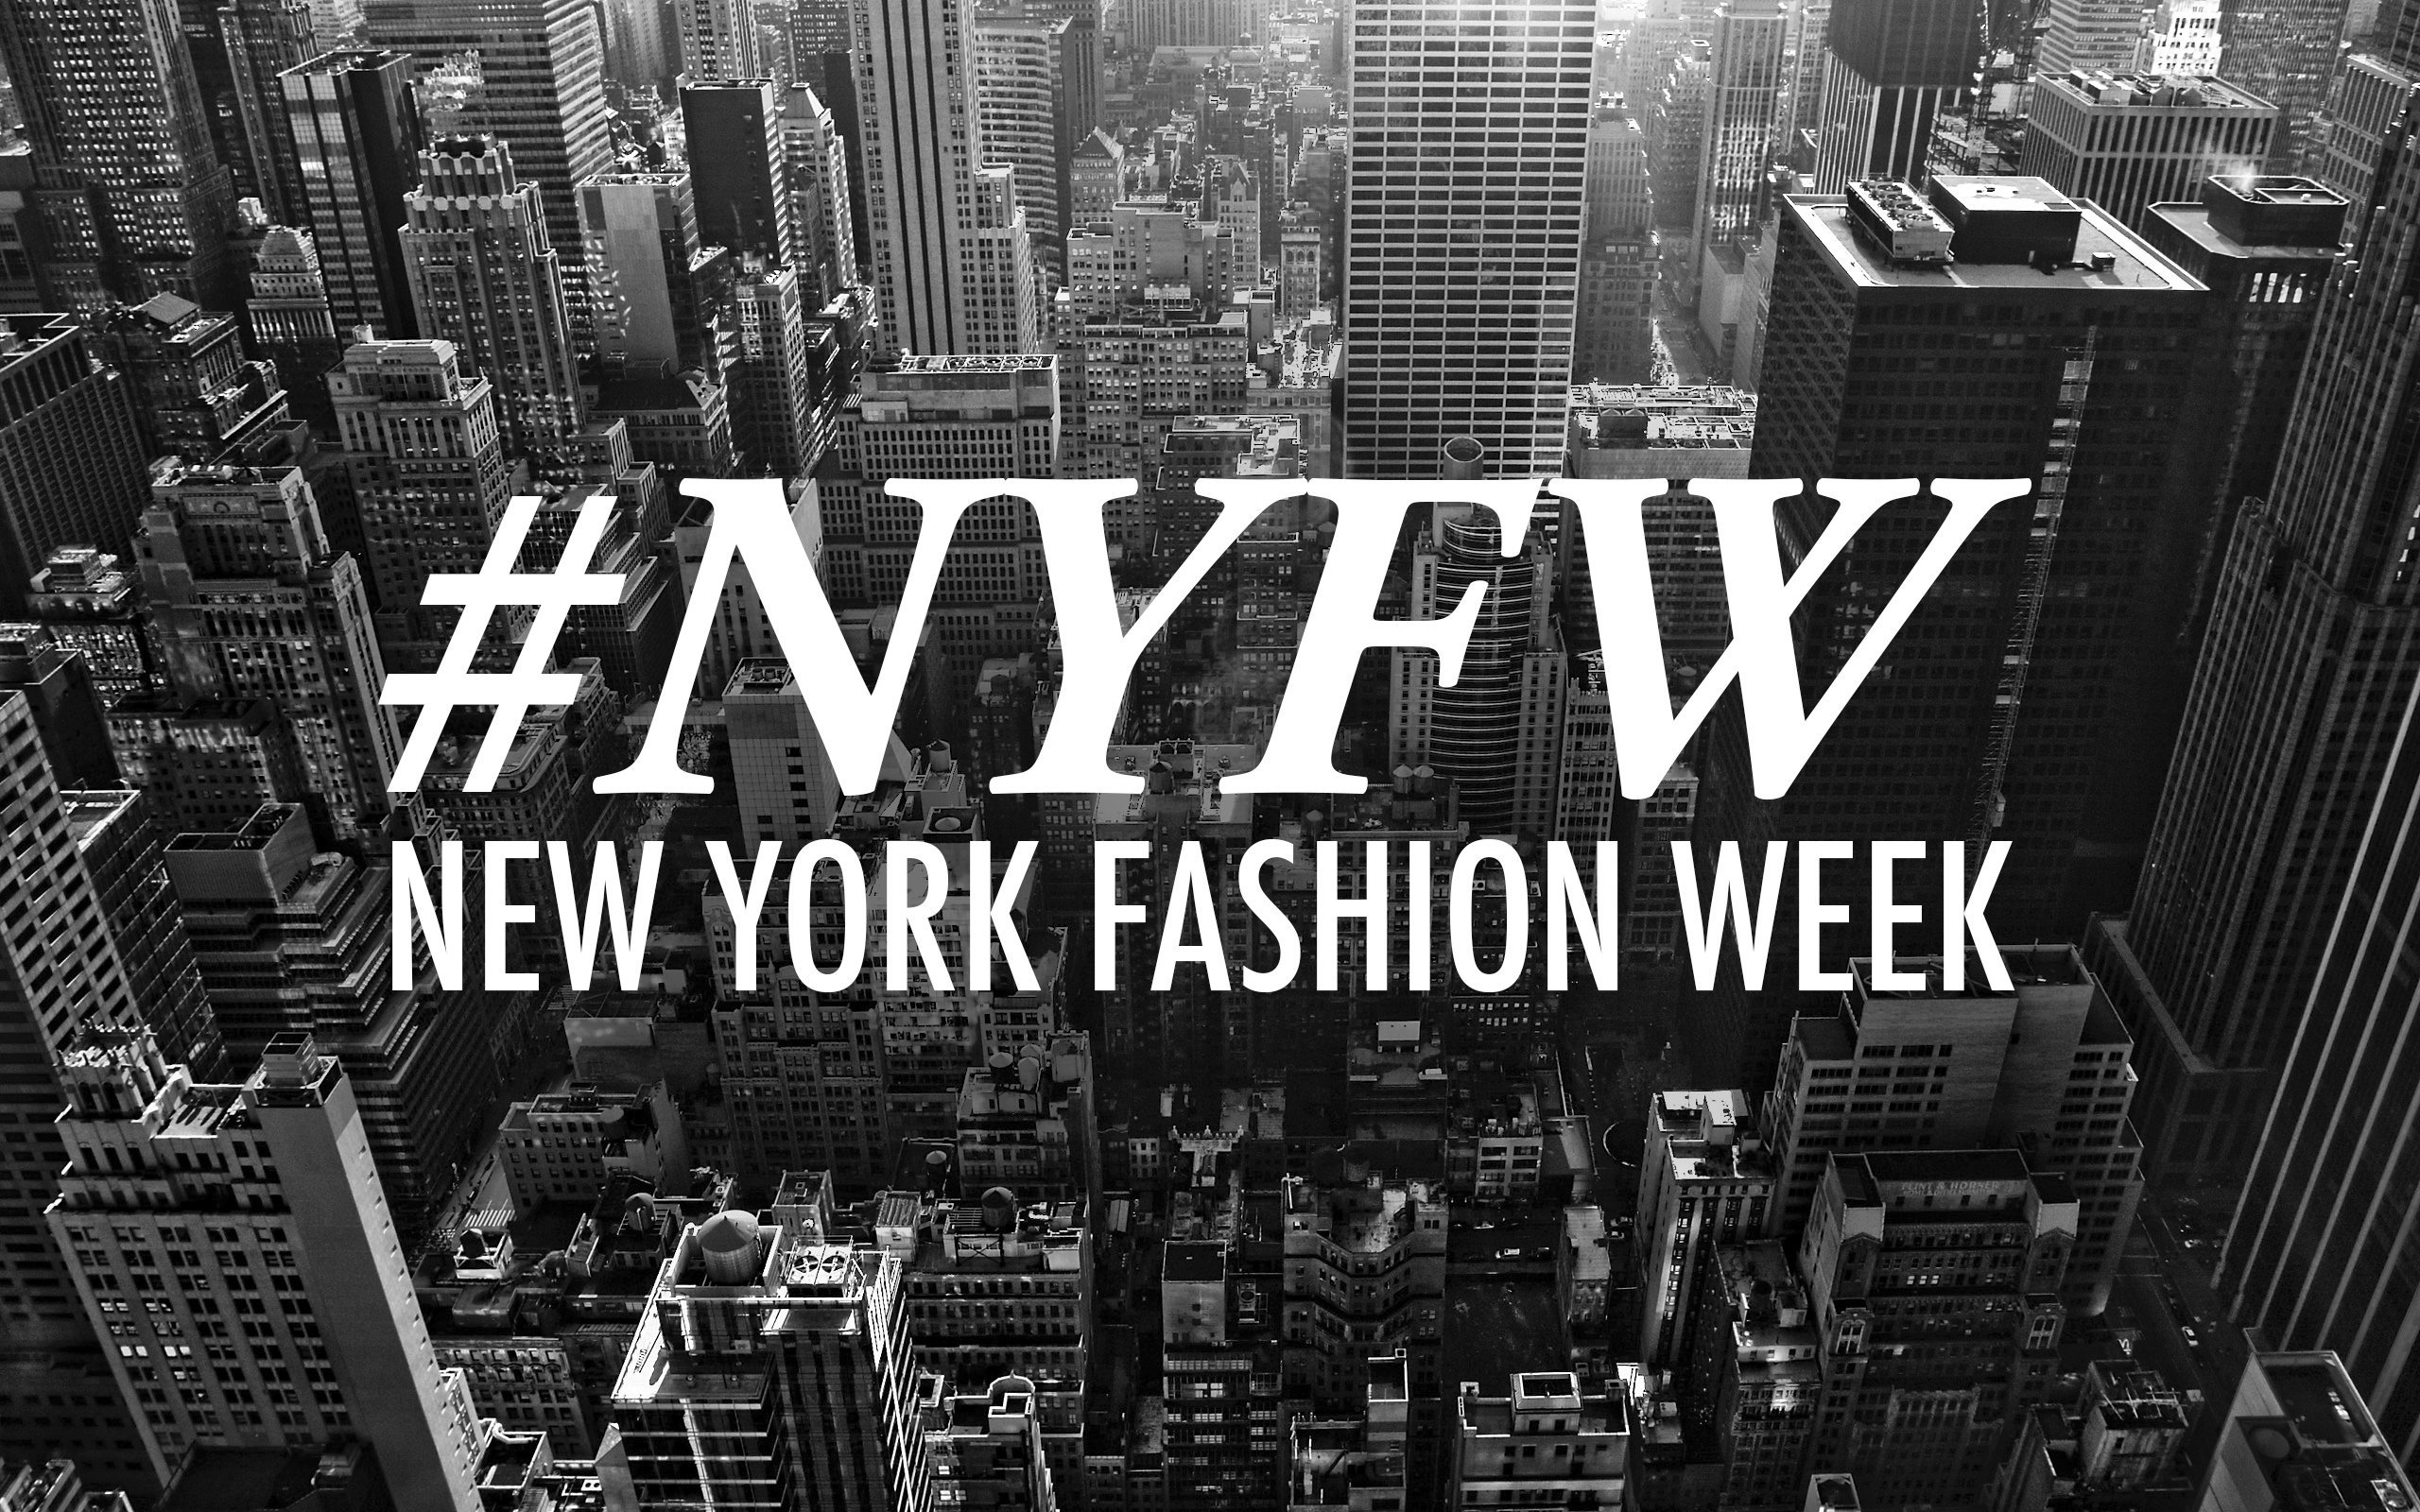 New York Fashion week it is!